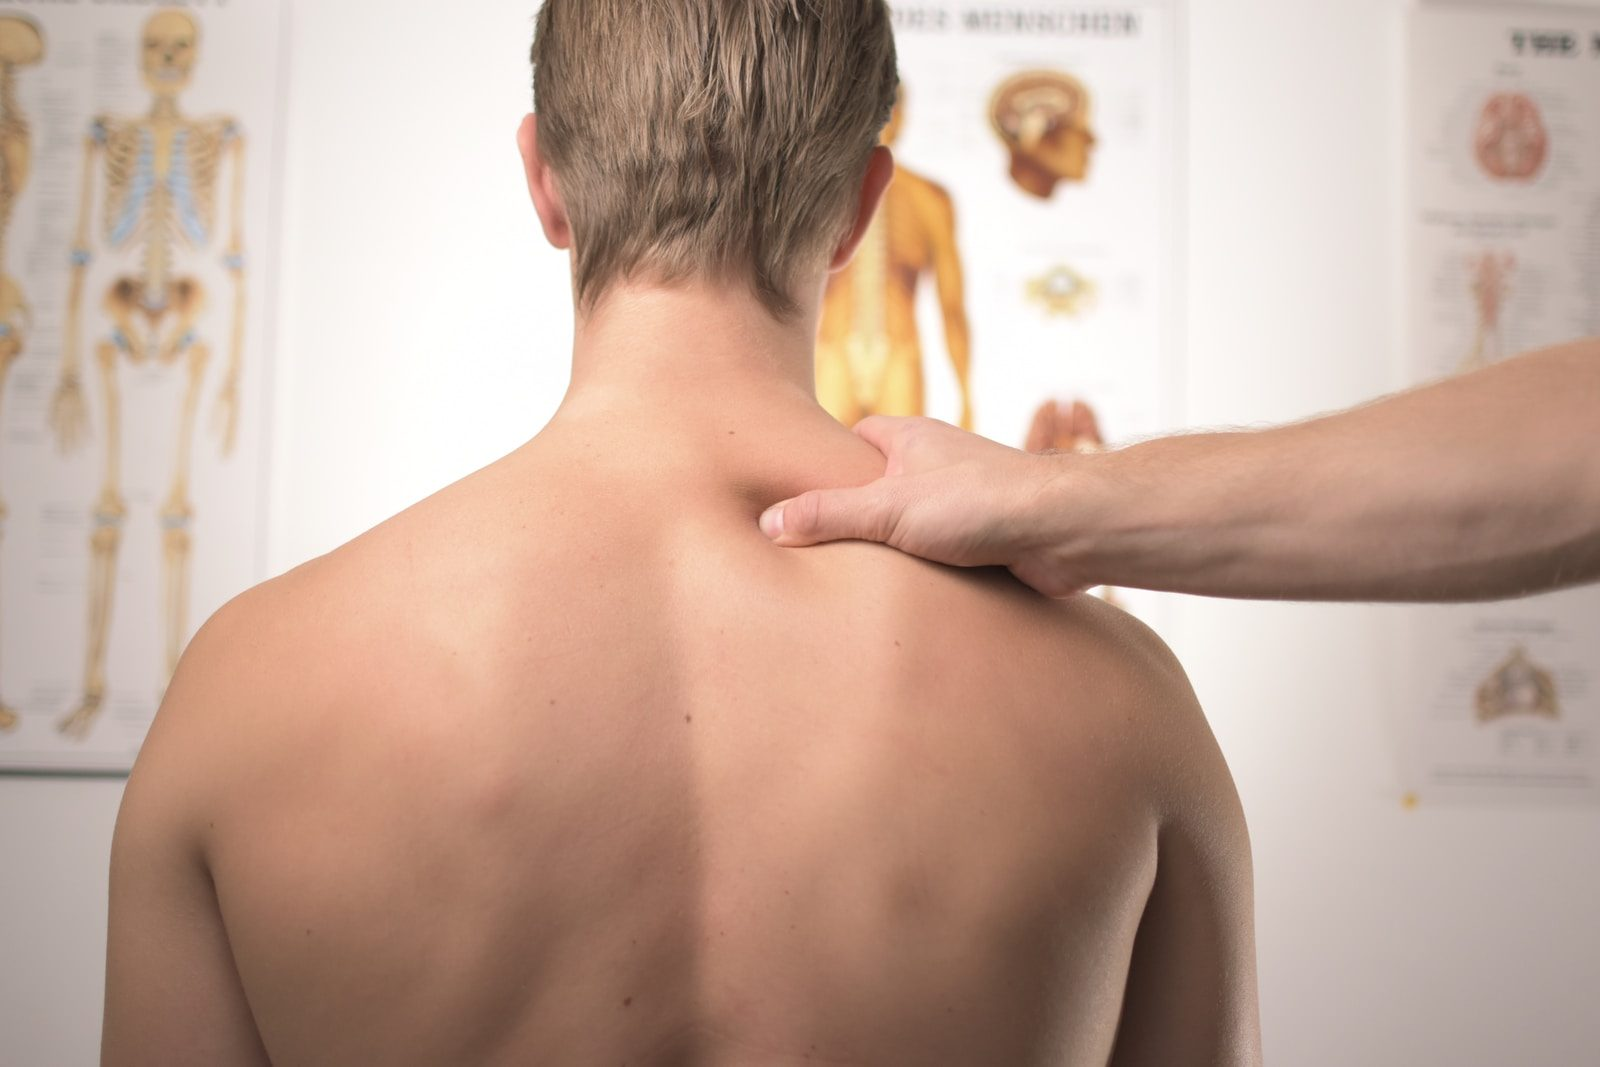 Massage therapist pinching the upper trapezius muscle of the posterior view of a muscular topless man